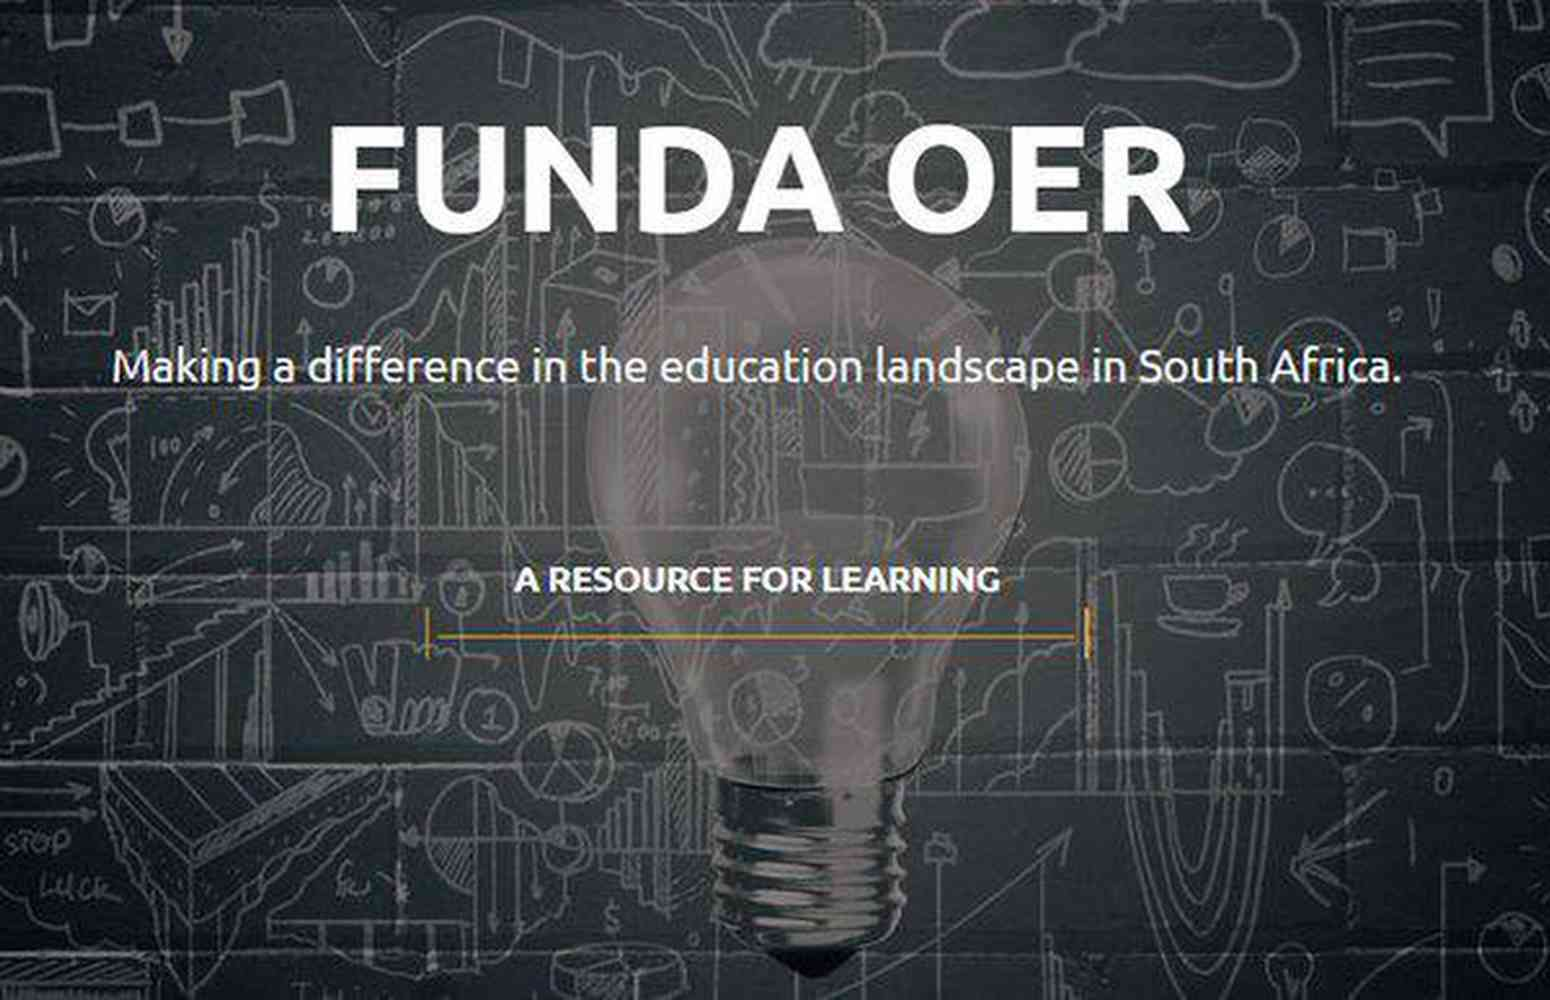 FUNDA Open Educational Resource